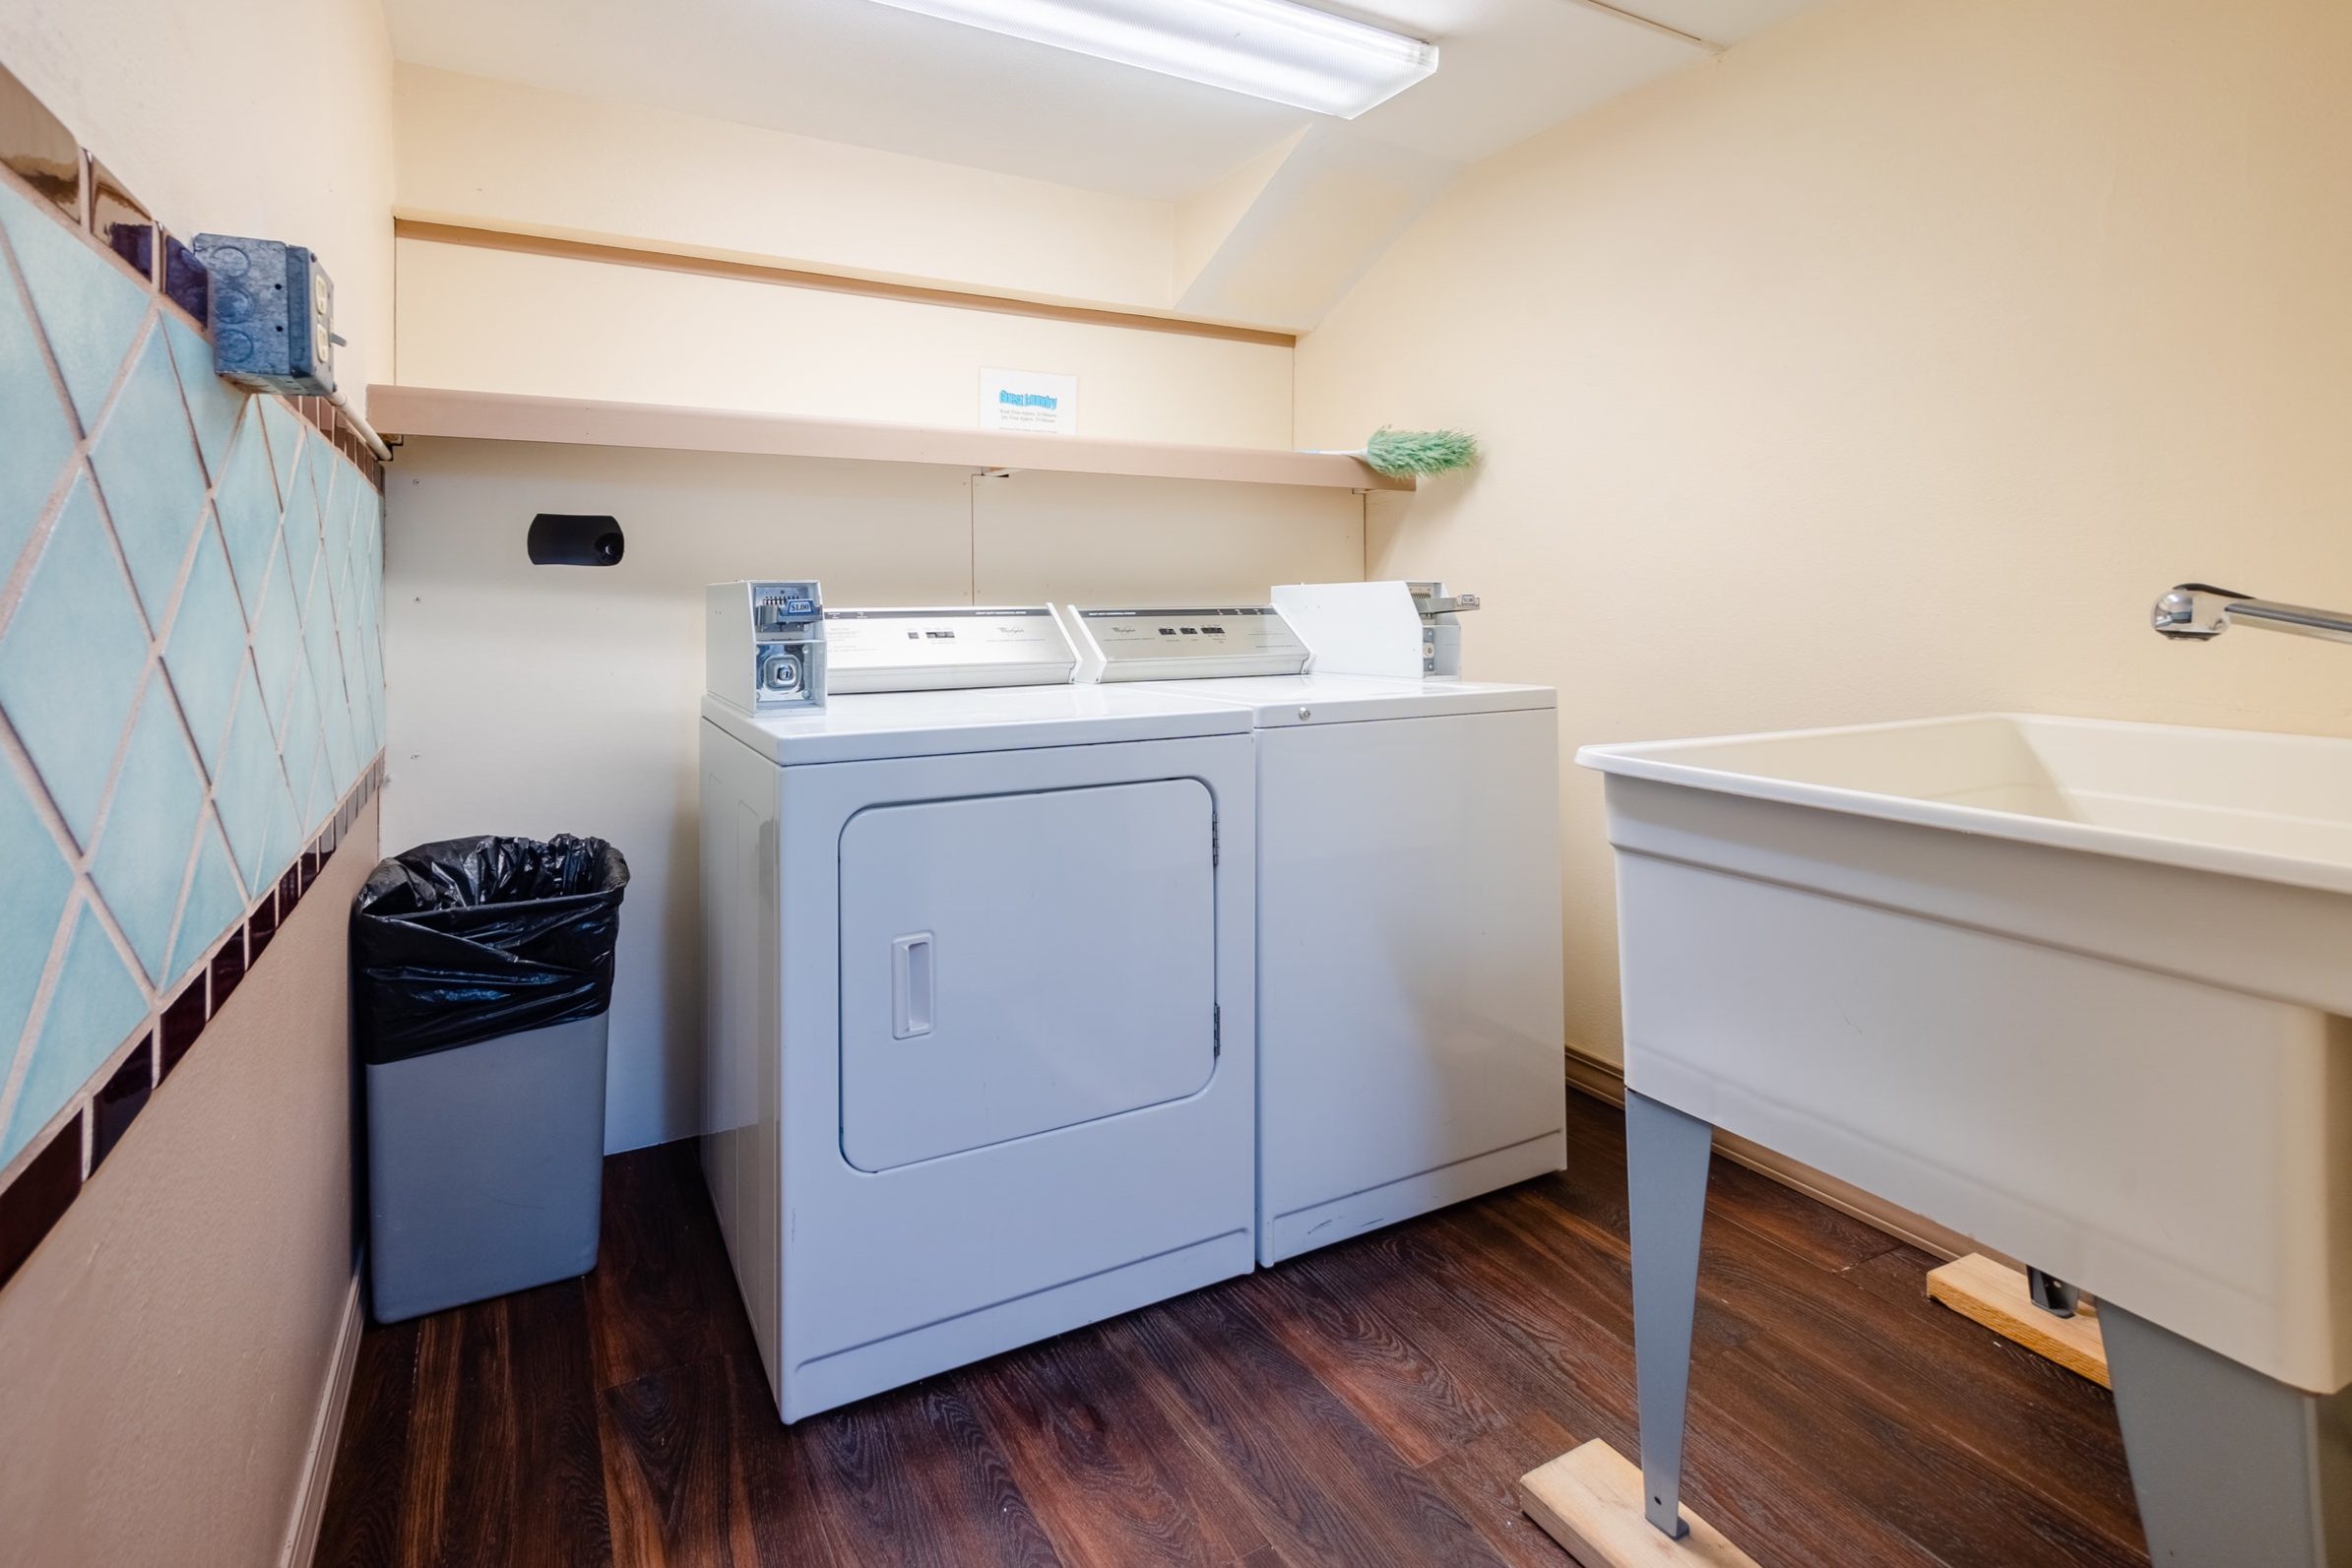 Laundry - Coin operated laundry available on 1st floor